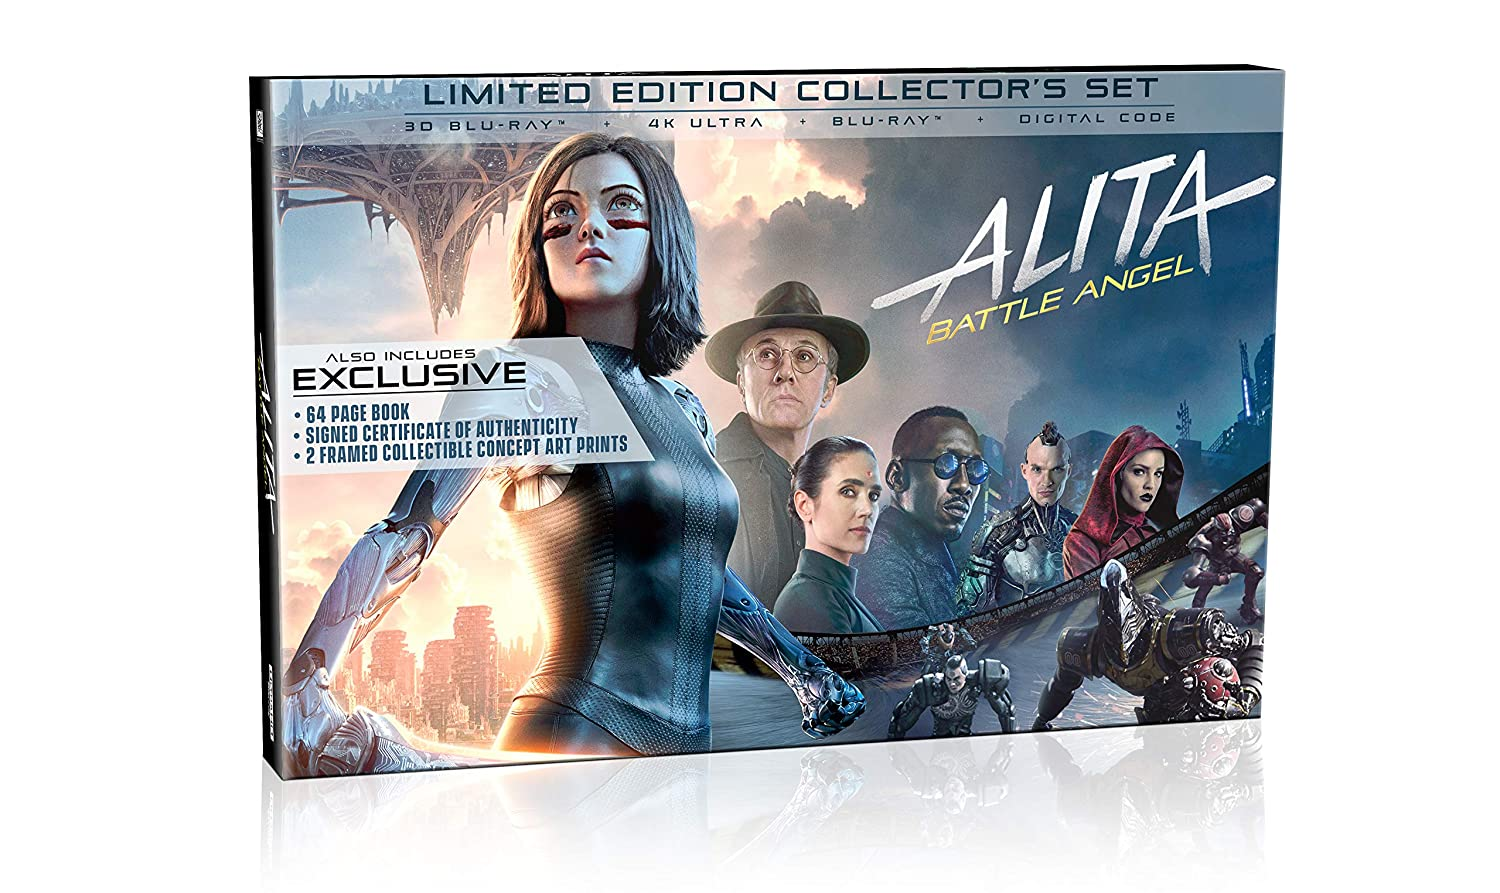 Amazon com: Alita: Battle Angel Limited Edition Collector's Set [Blu